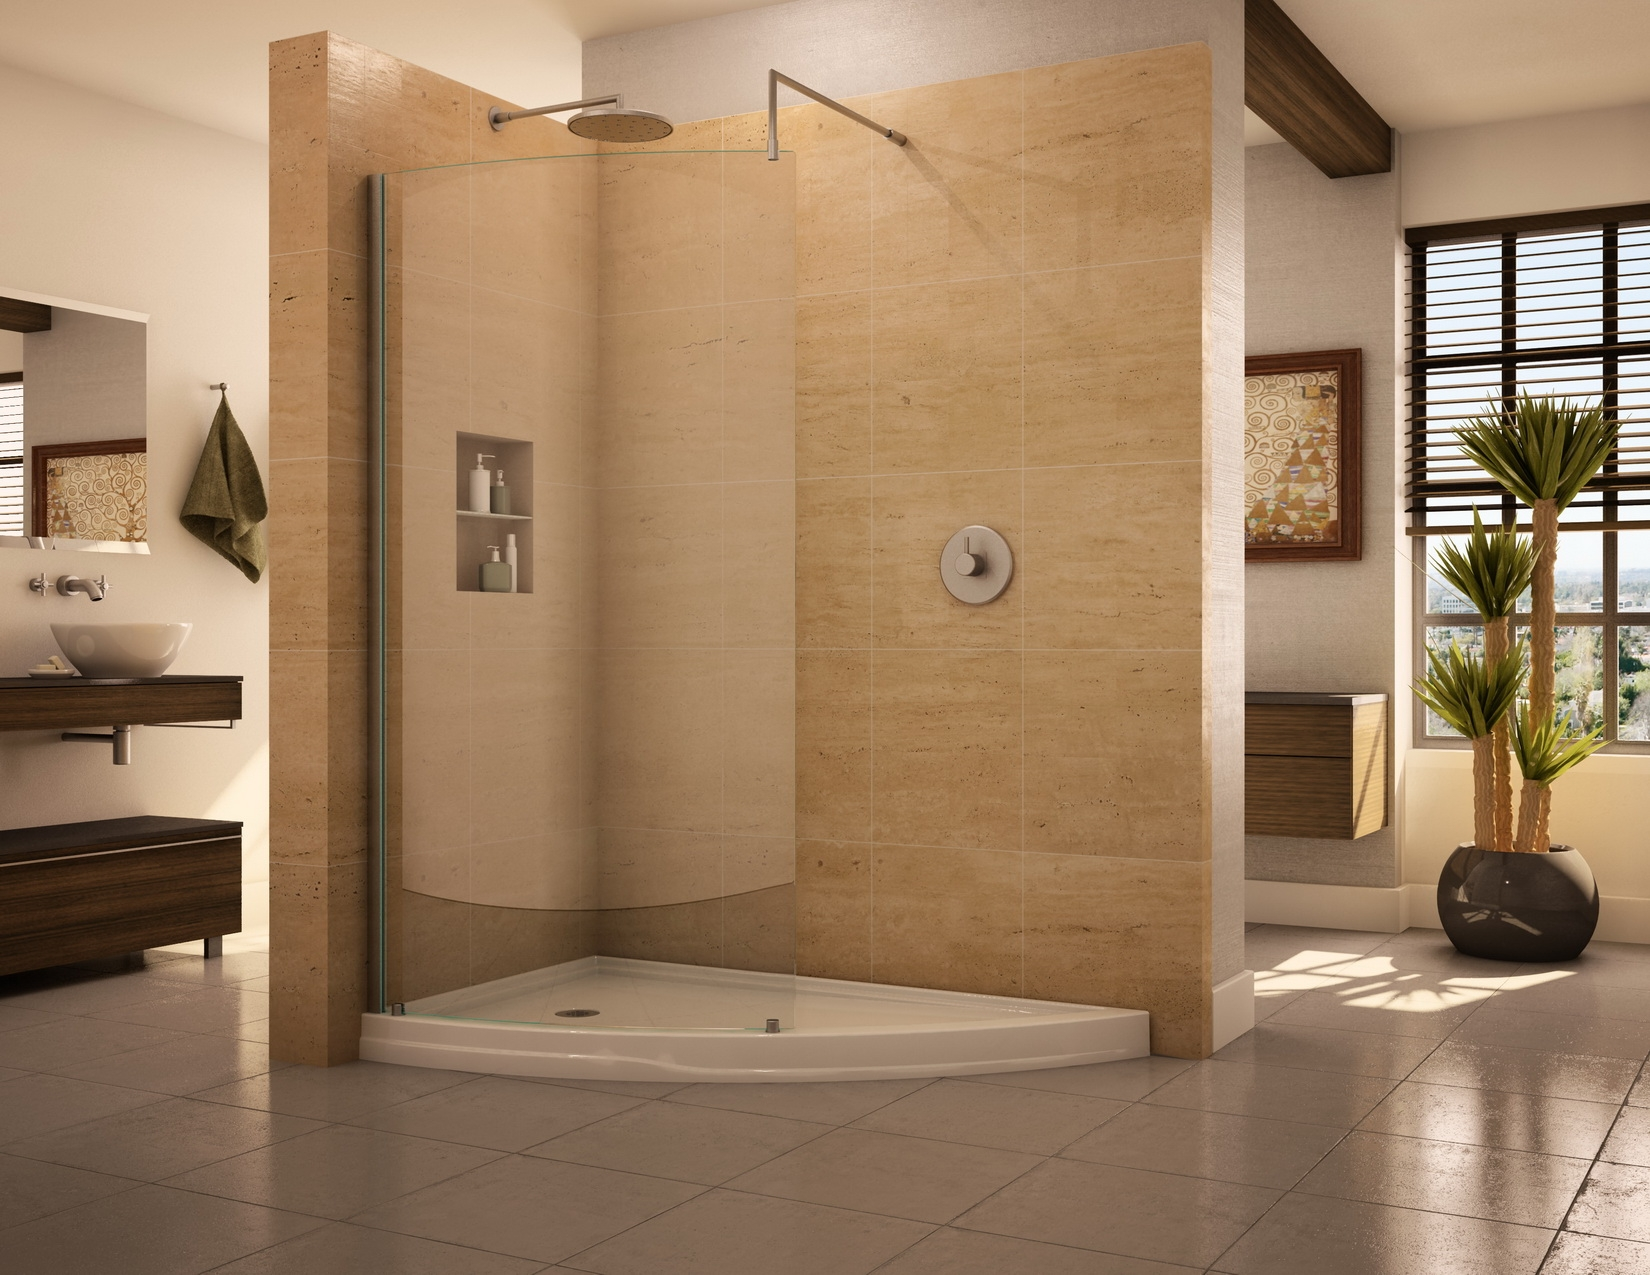 shower glass adeltmechanical doors door using sliding frame brilliant ideas